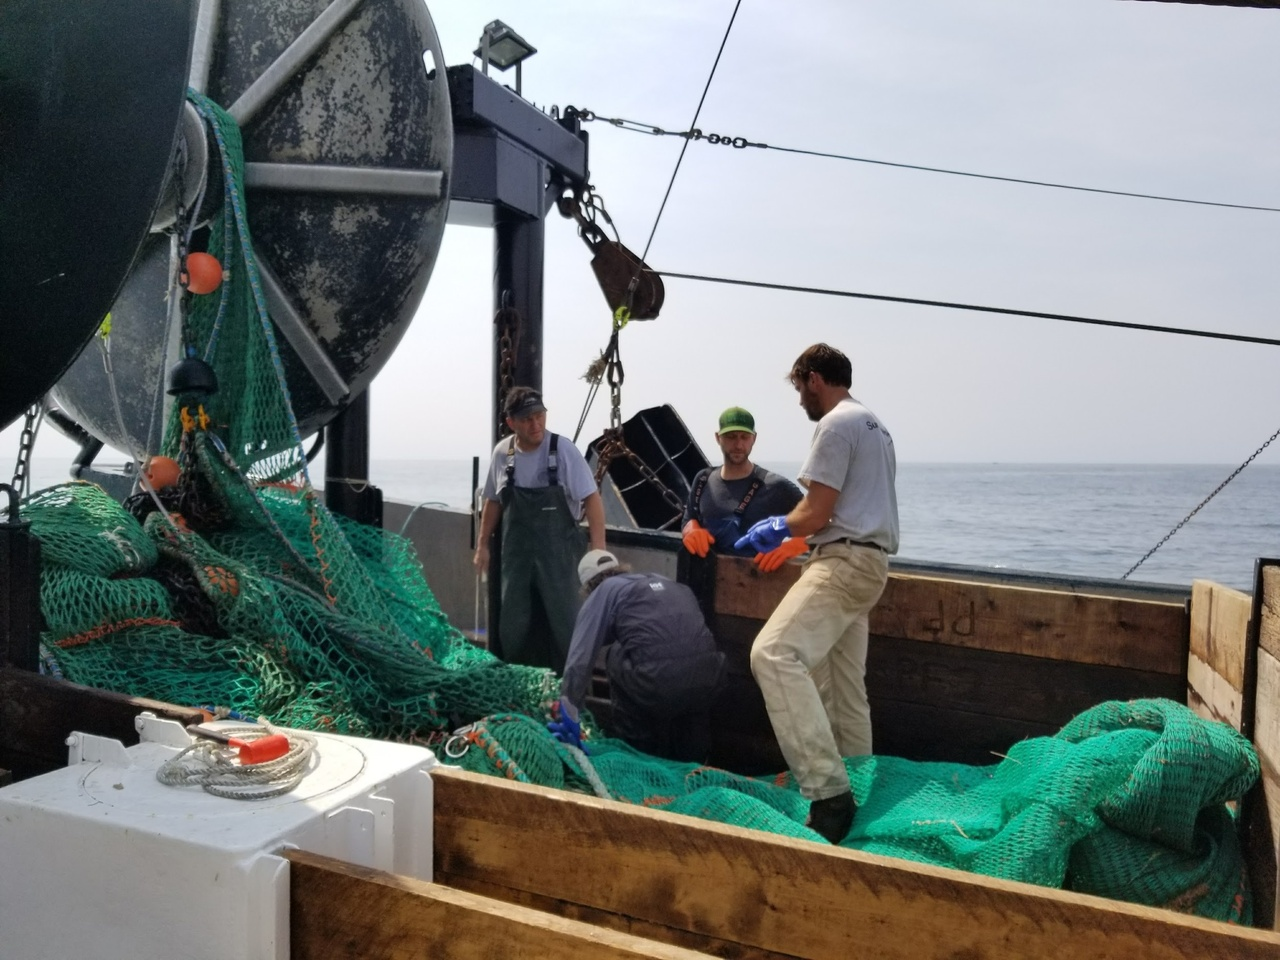 Crew on deck, green nets and winch visible.